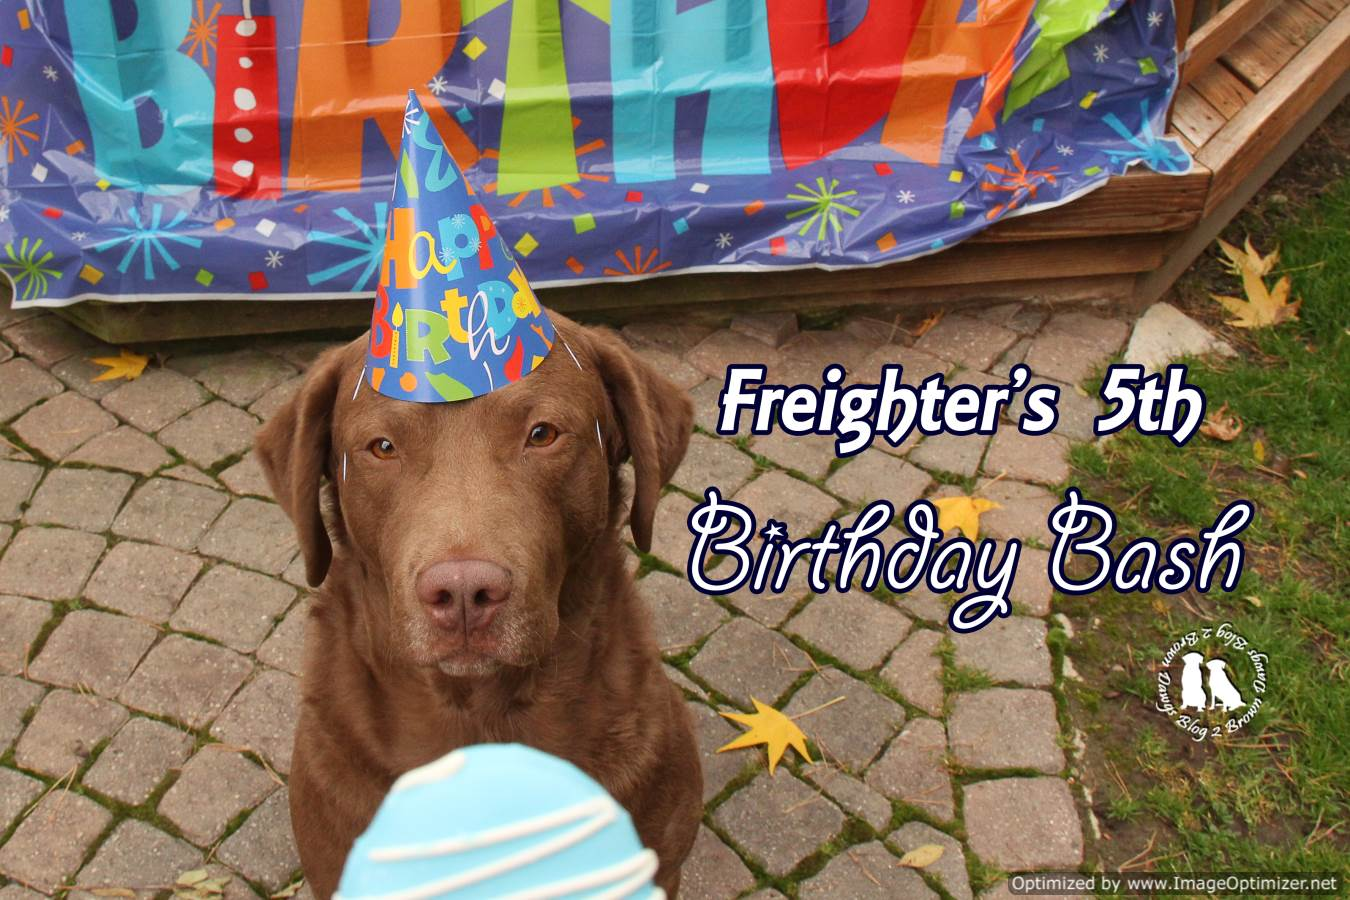 Freighter's 5th Birthday Bash